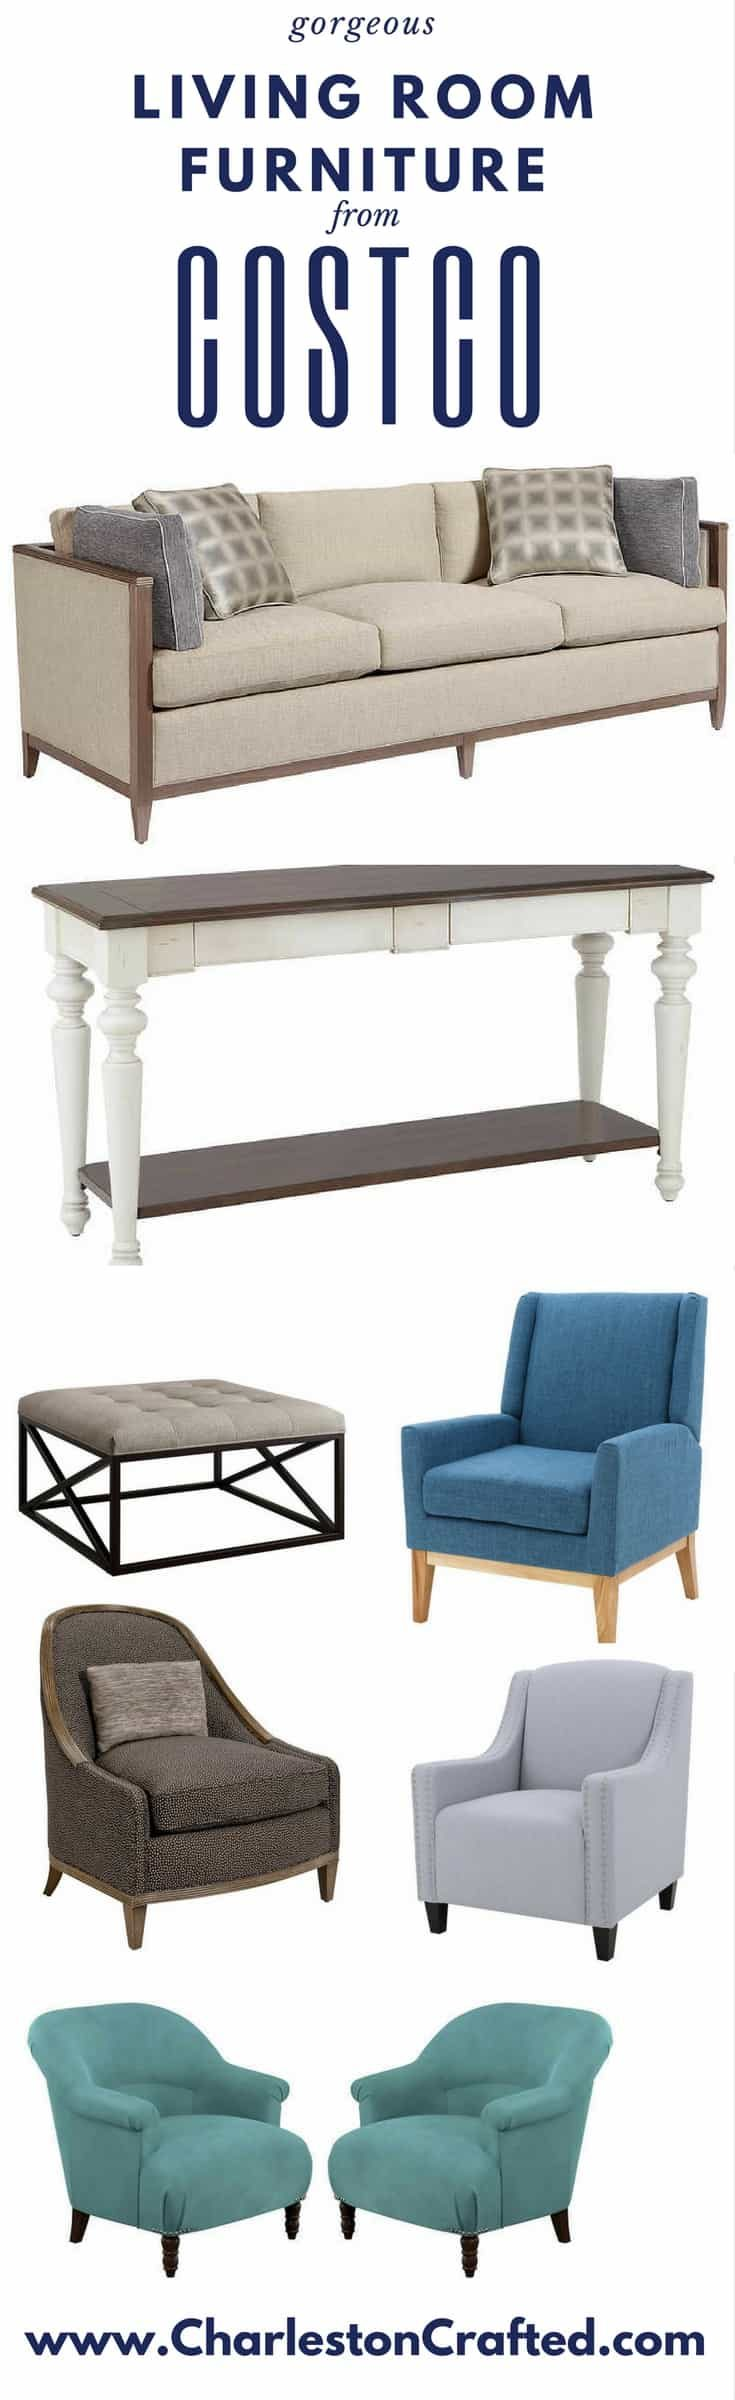 Gorgeous Living Room Furniture that you wouldn't believe came from COSTCO! via Charleston Crafted